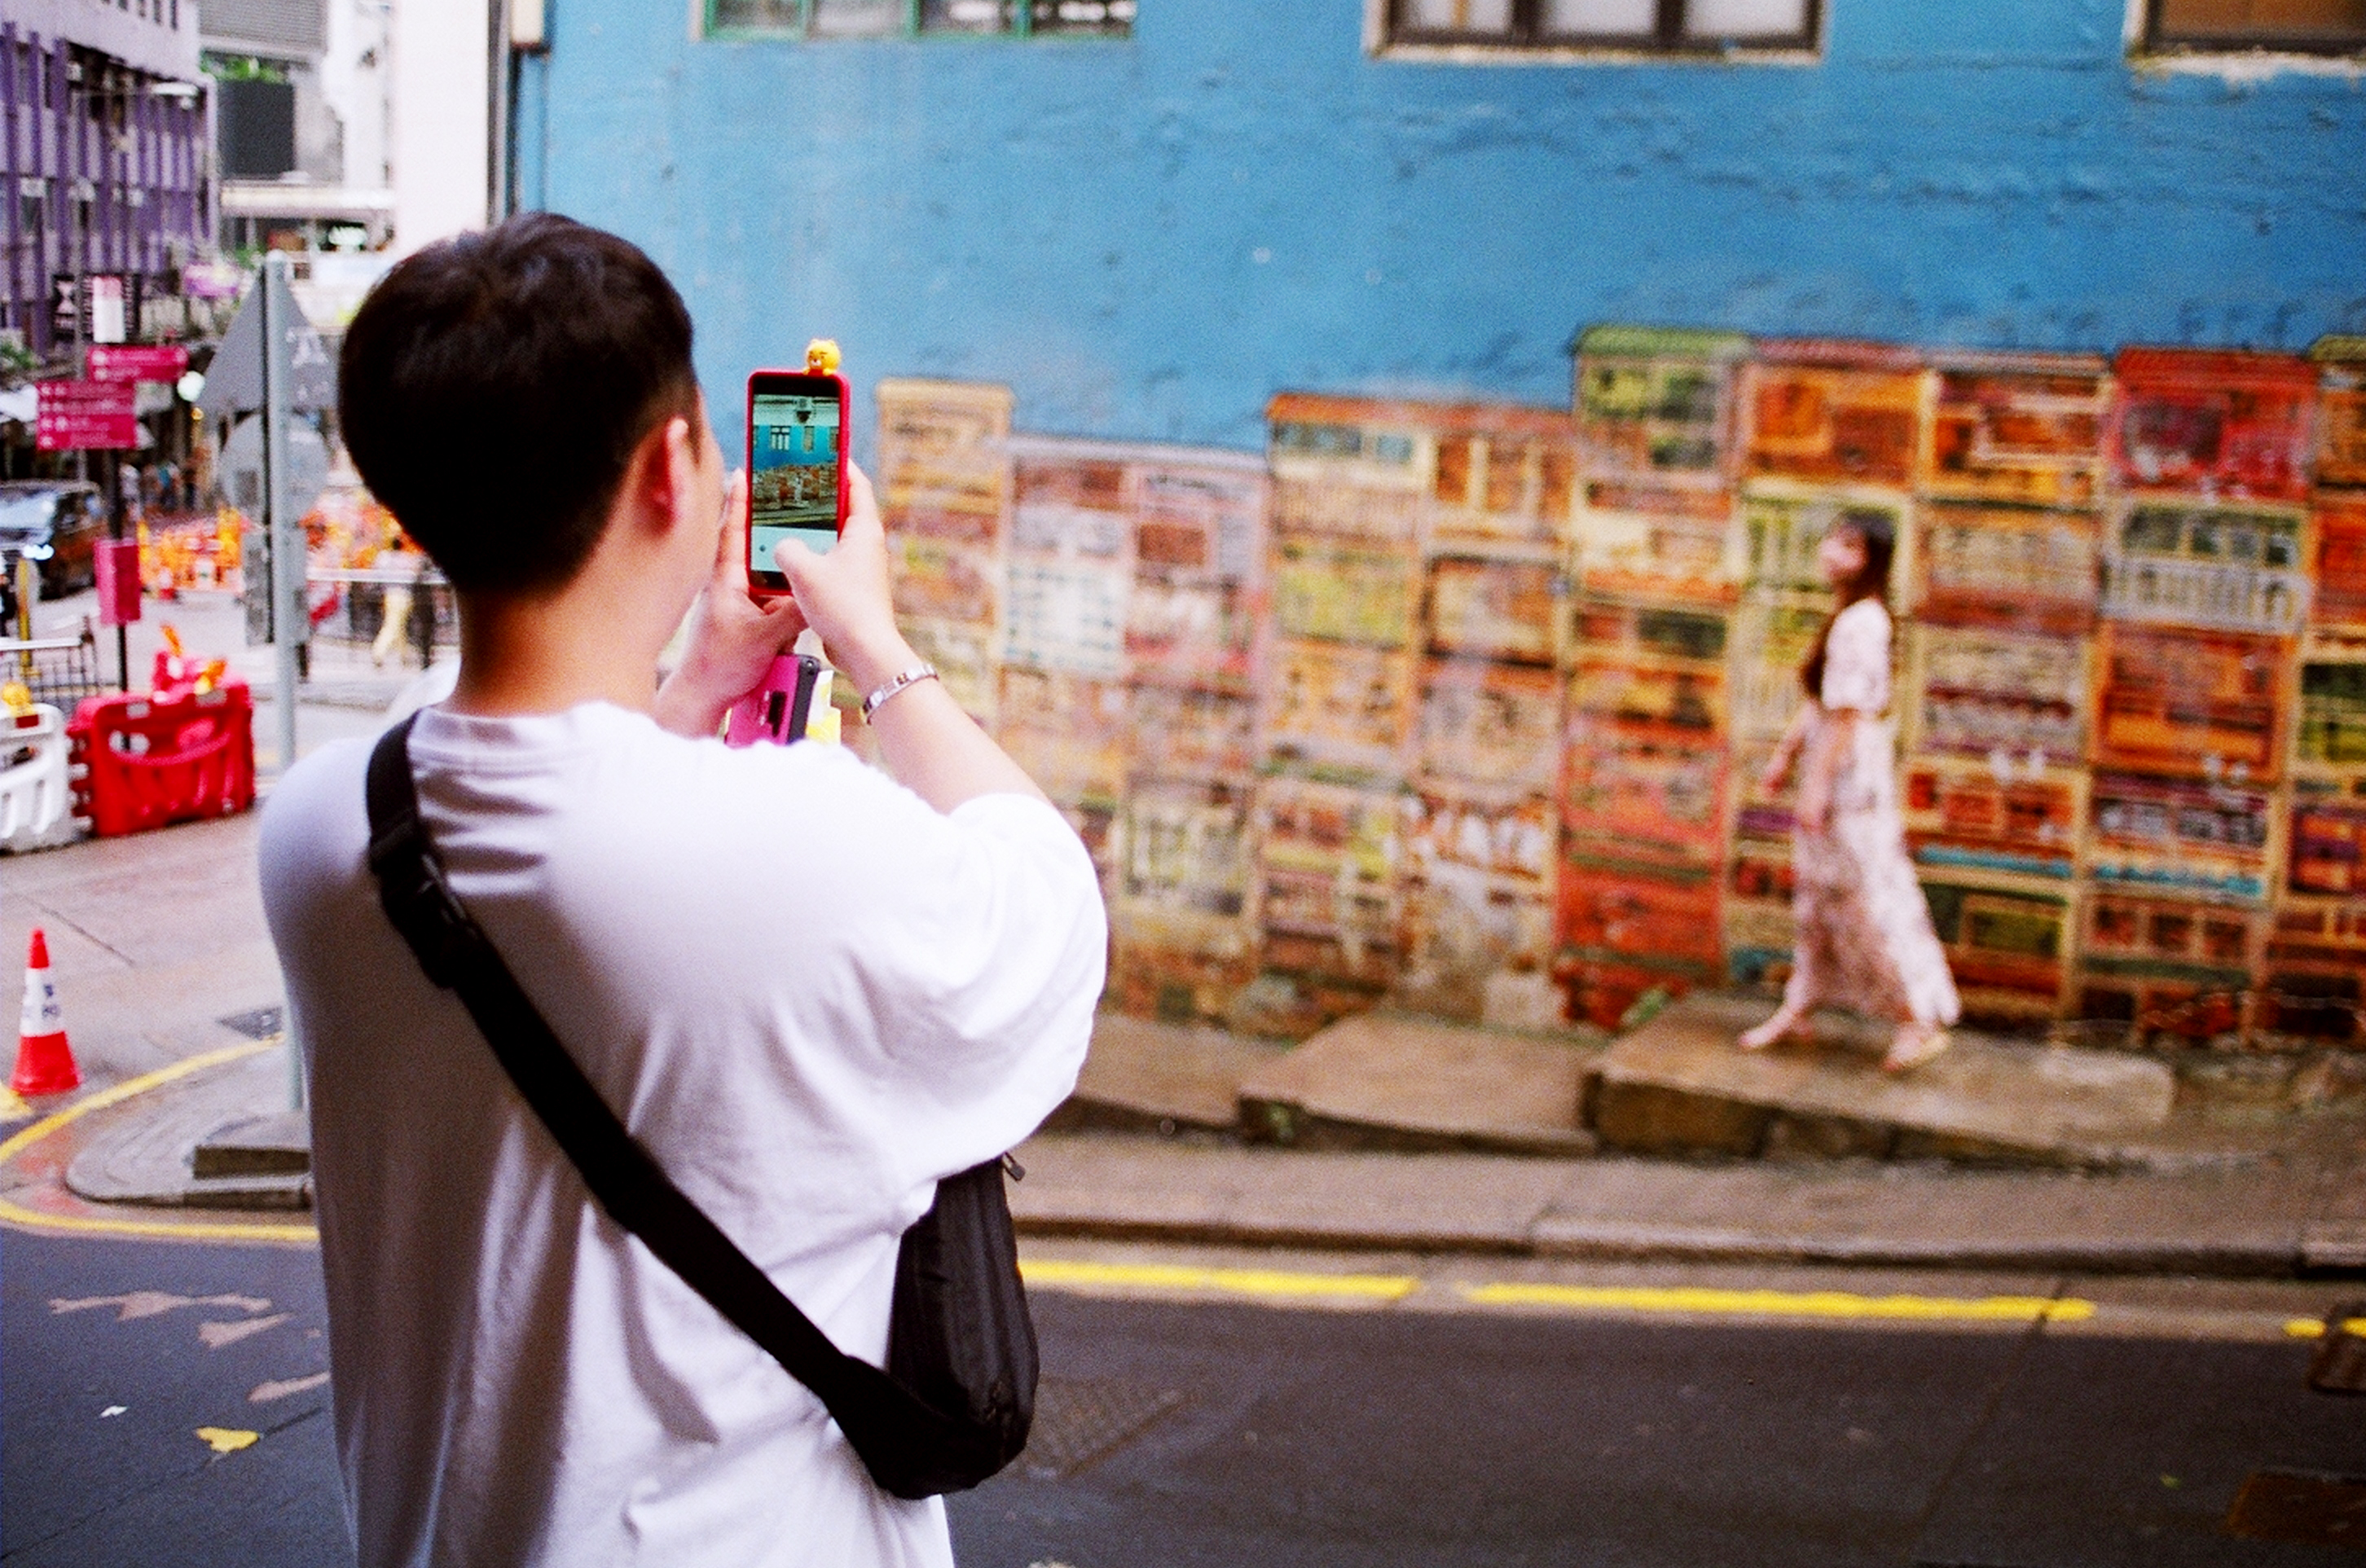 Couples working in tandem to get the perfect Insta